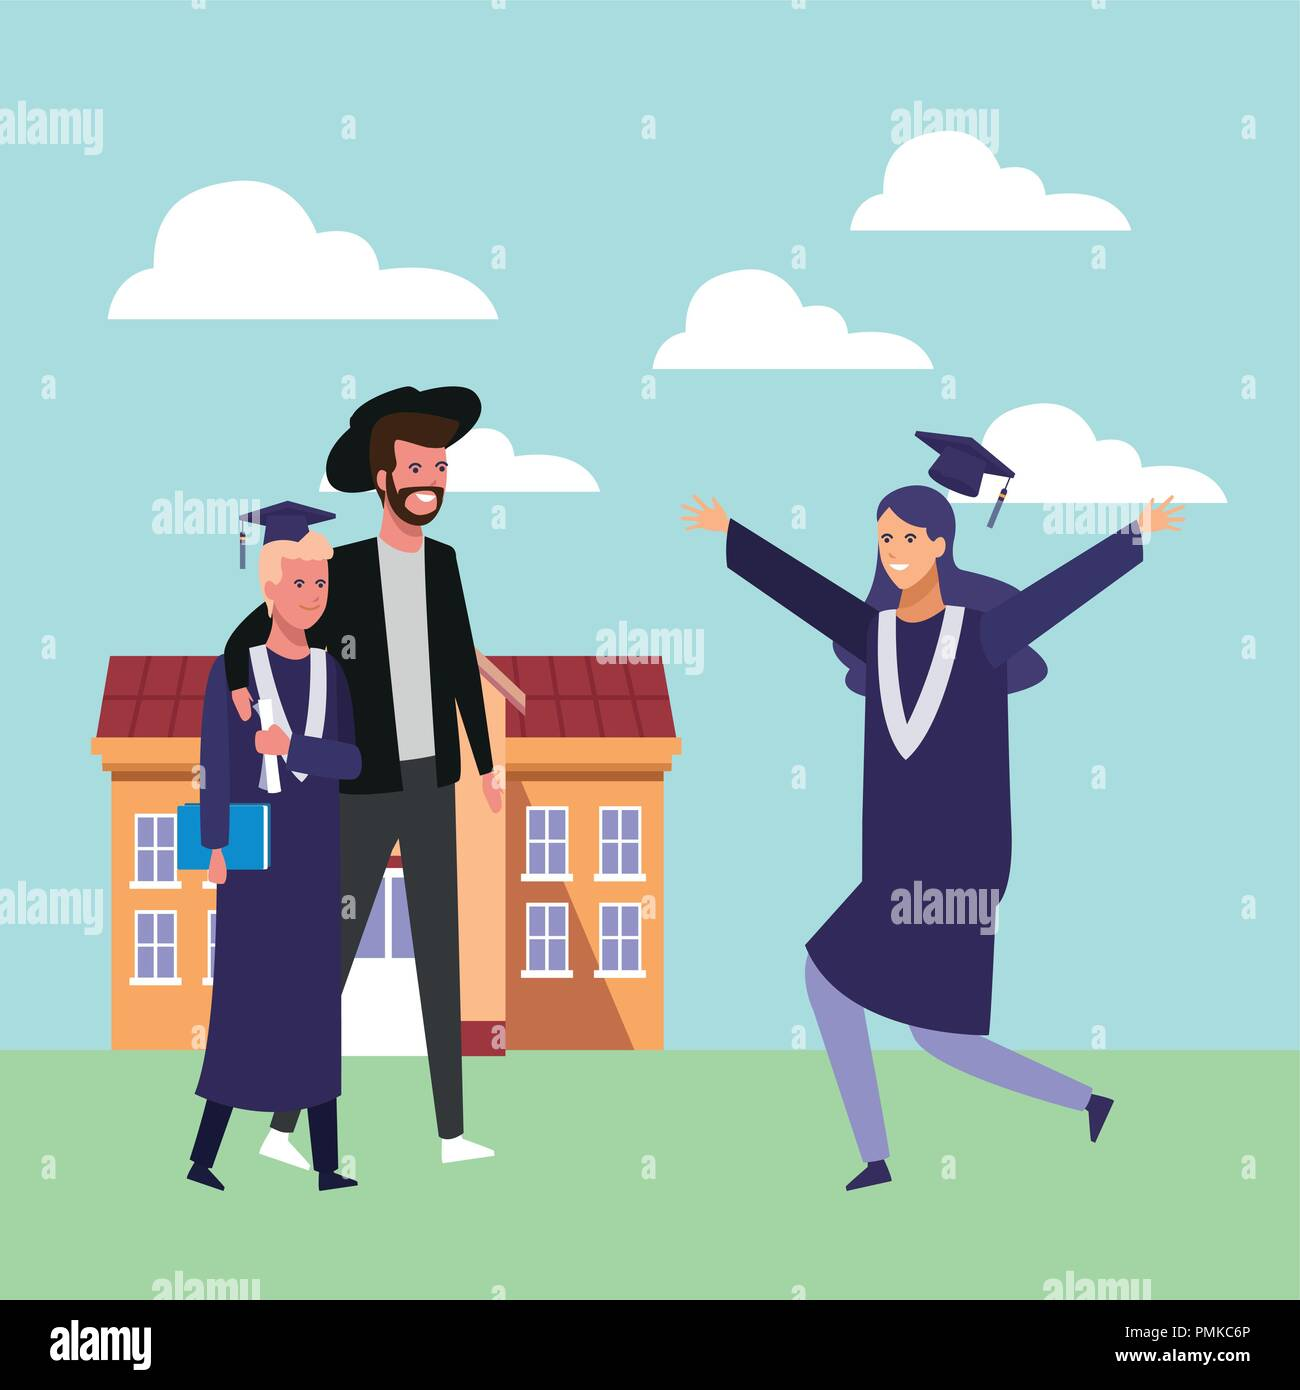 Cartoon Graduate Woman Graduation Gown Stock Photos & Cartoon ...